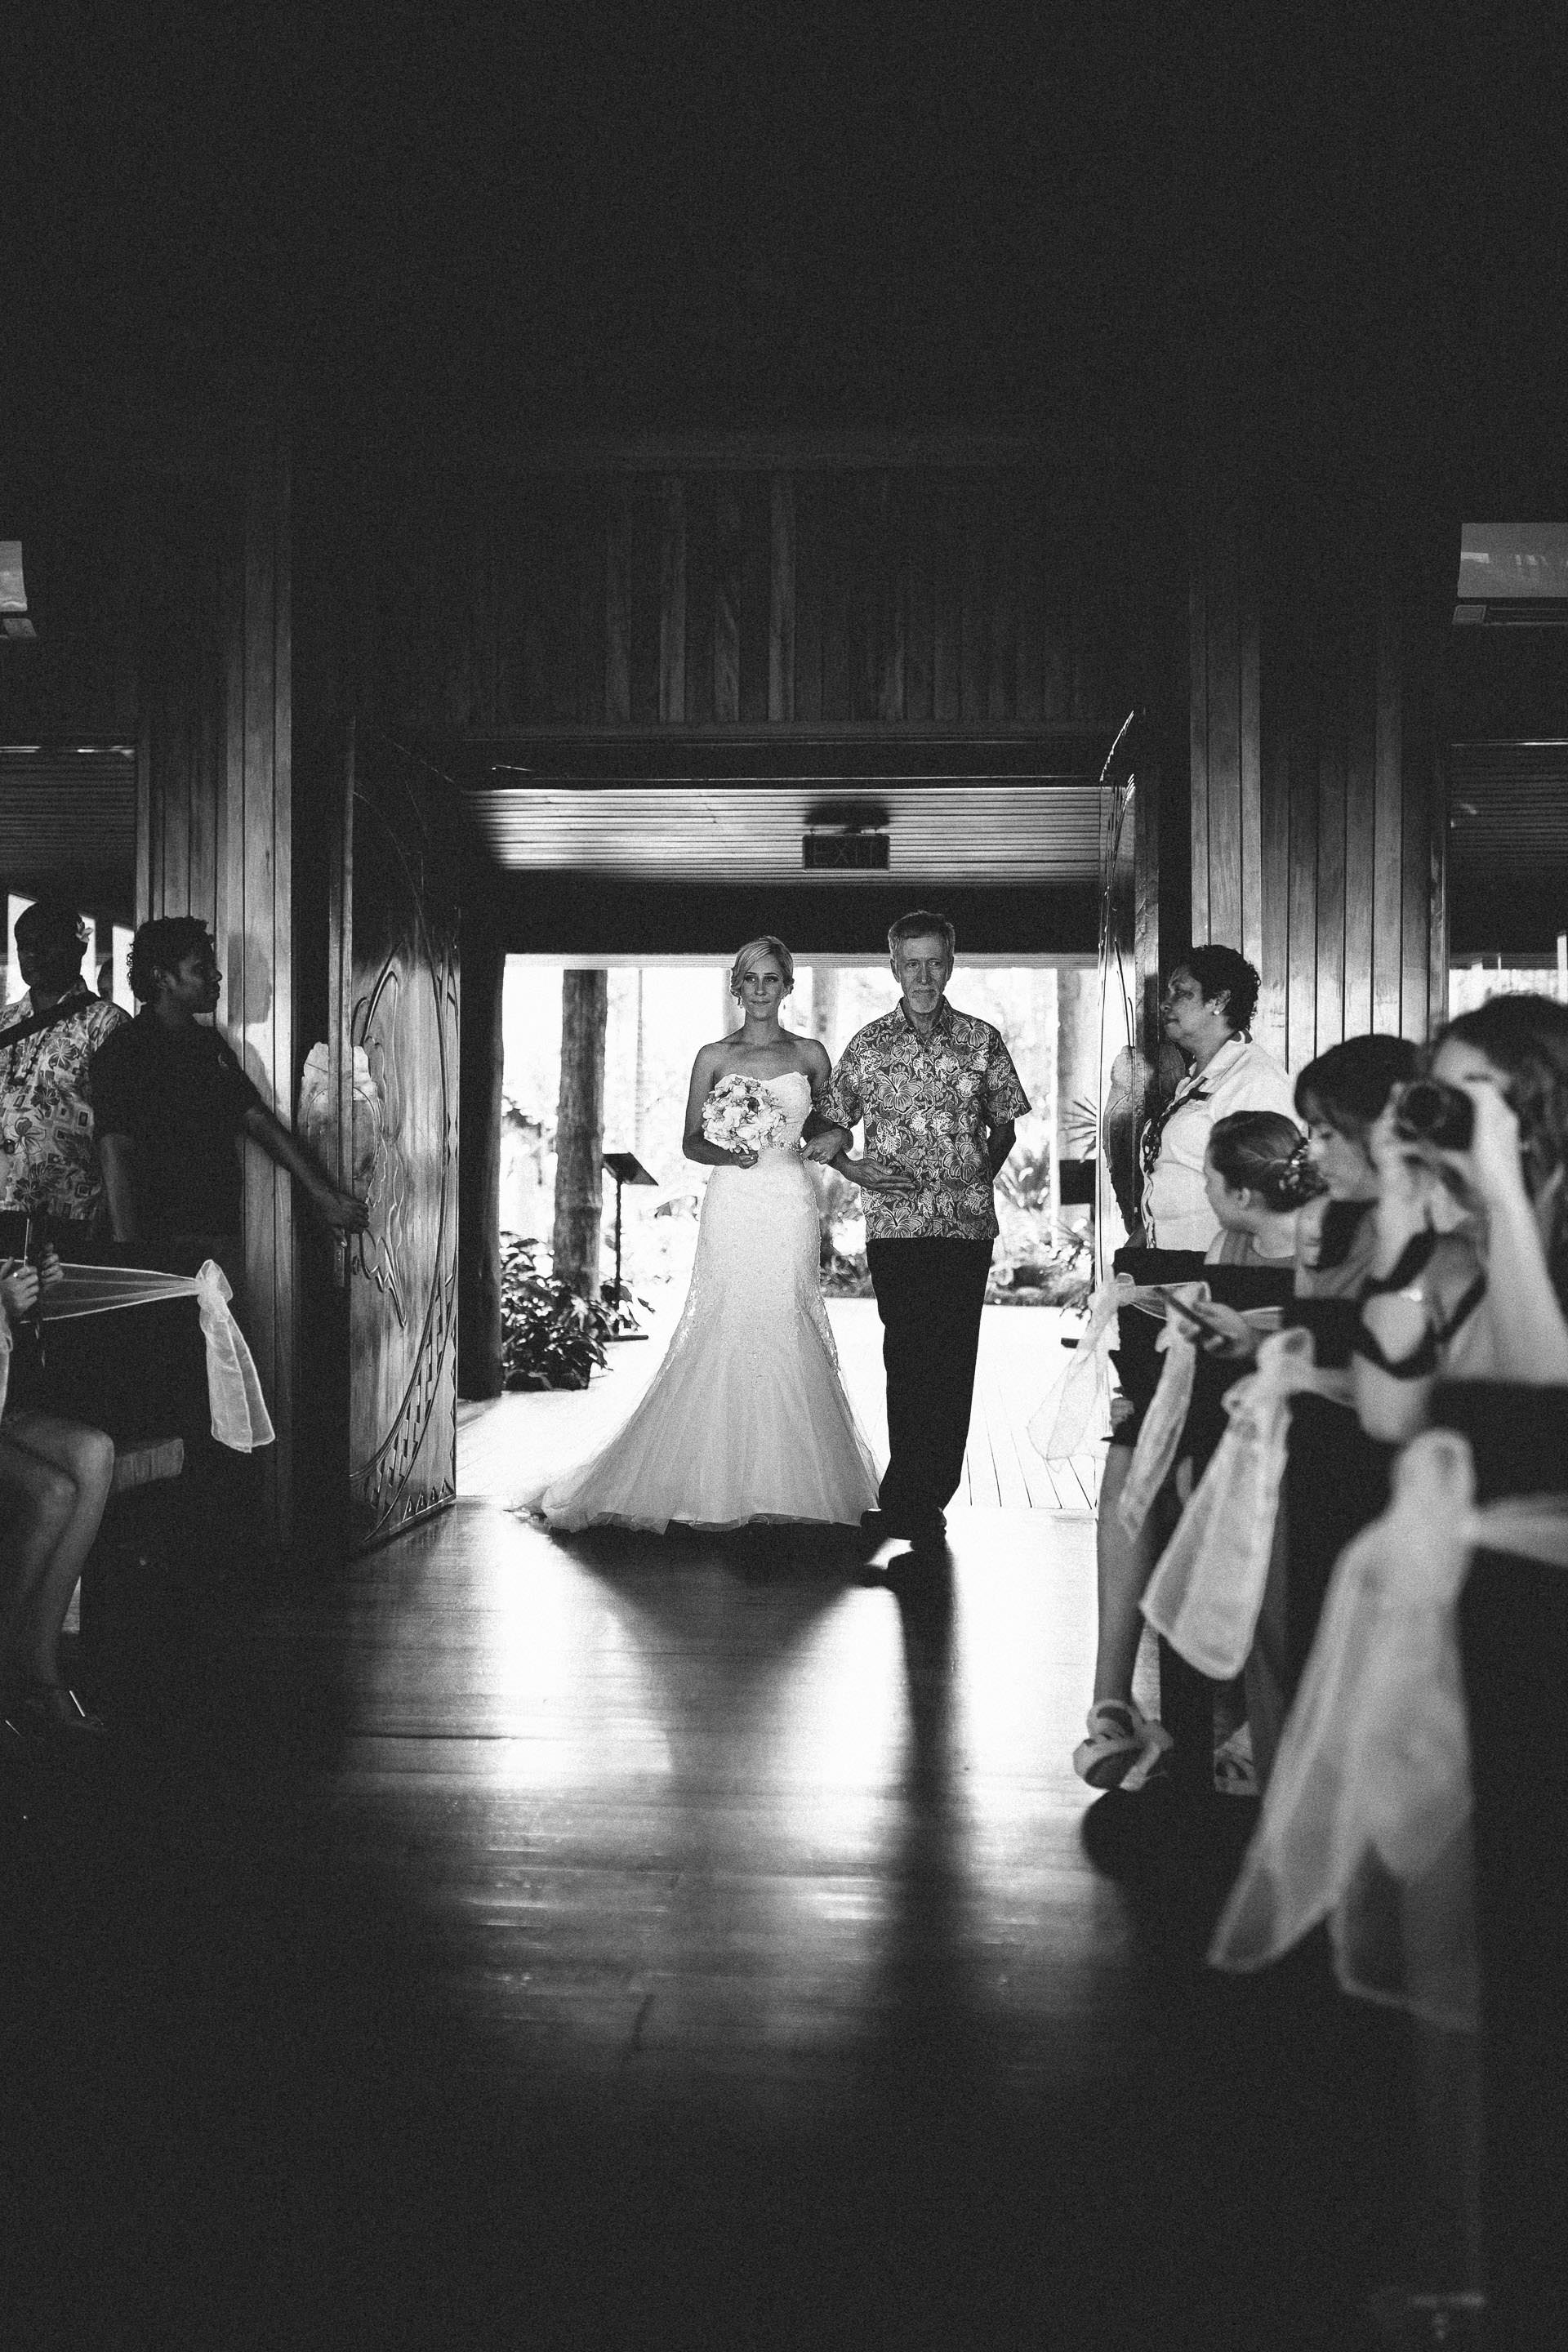 Bride being walked down the aisle by her father, black and white